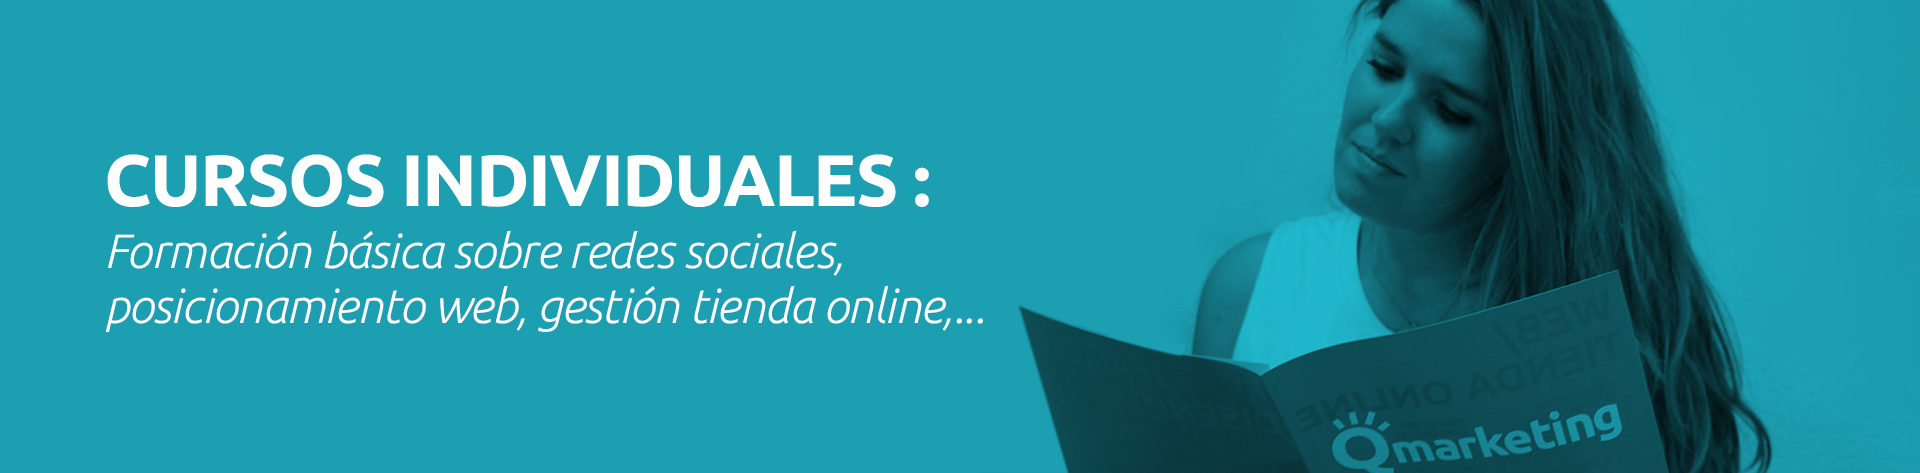 cursos-redes-sociales-facebook-posicionamiento-web-seo-sem-marketing-online-valencia-qmarketing